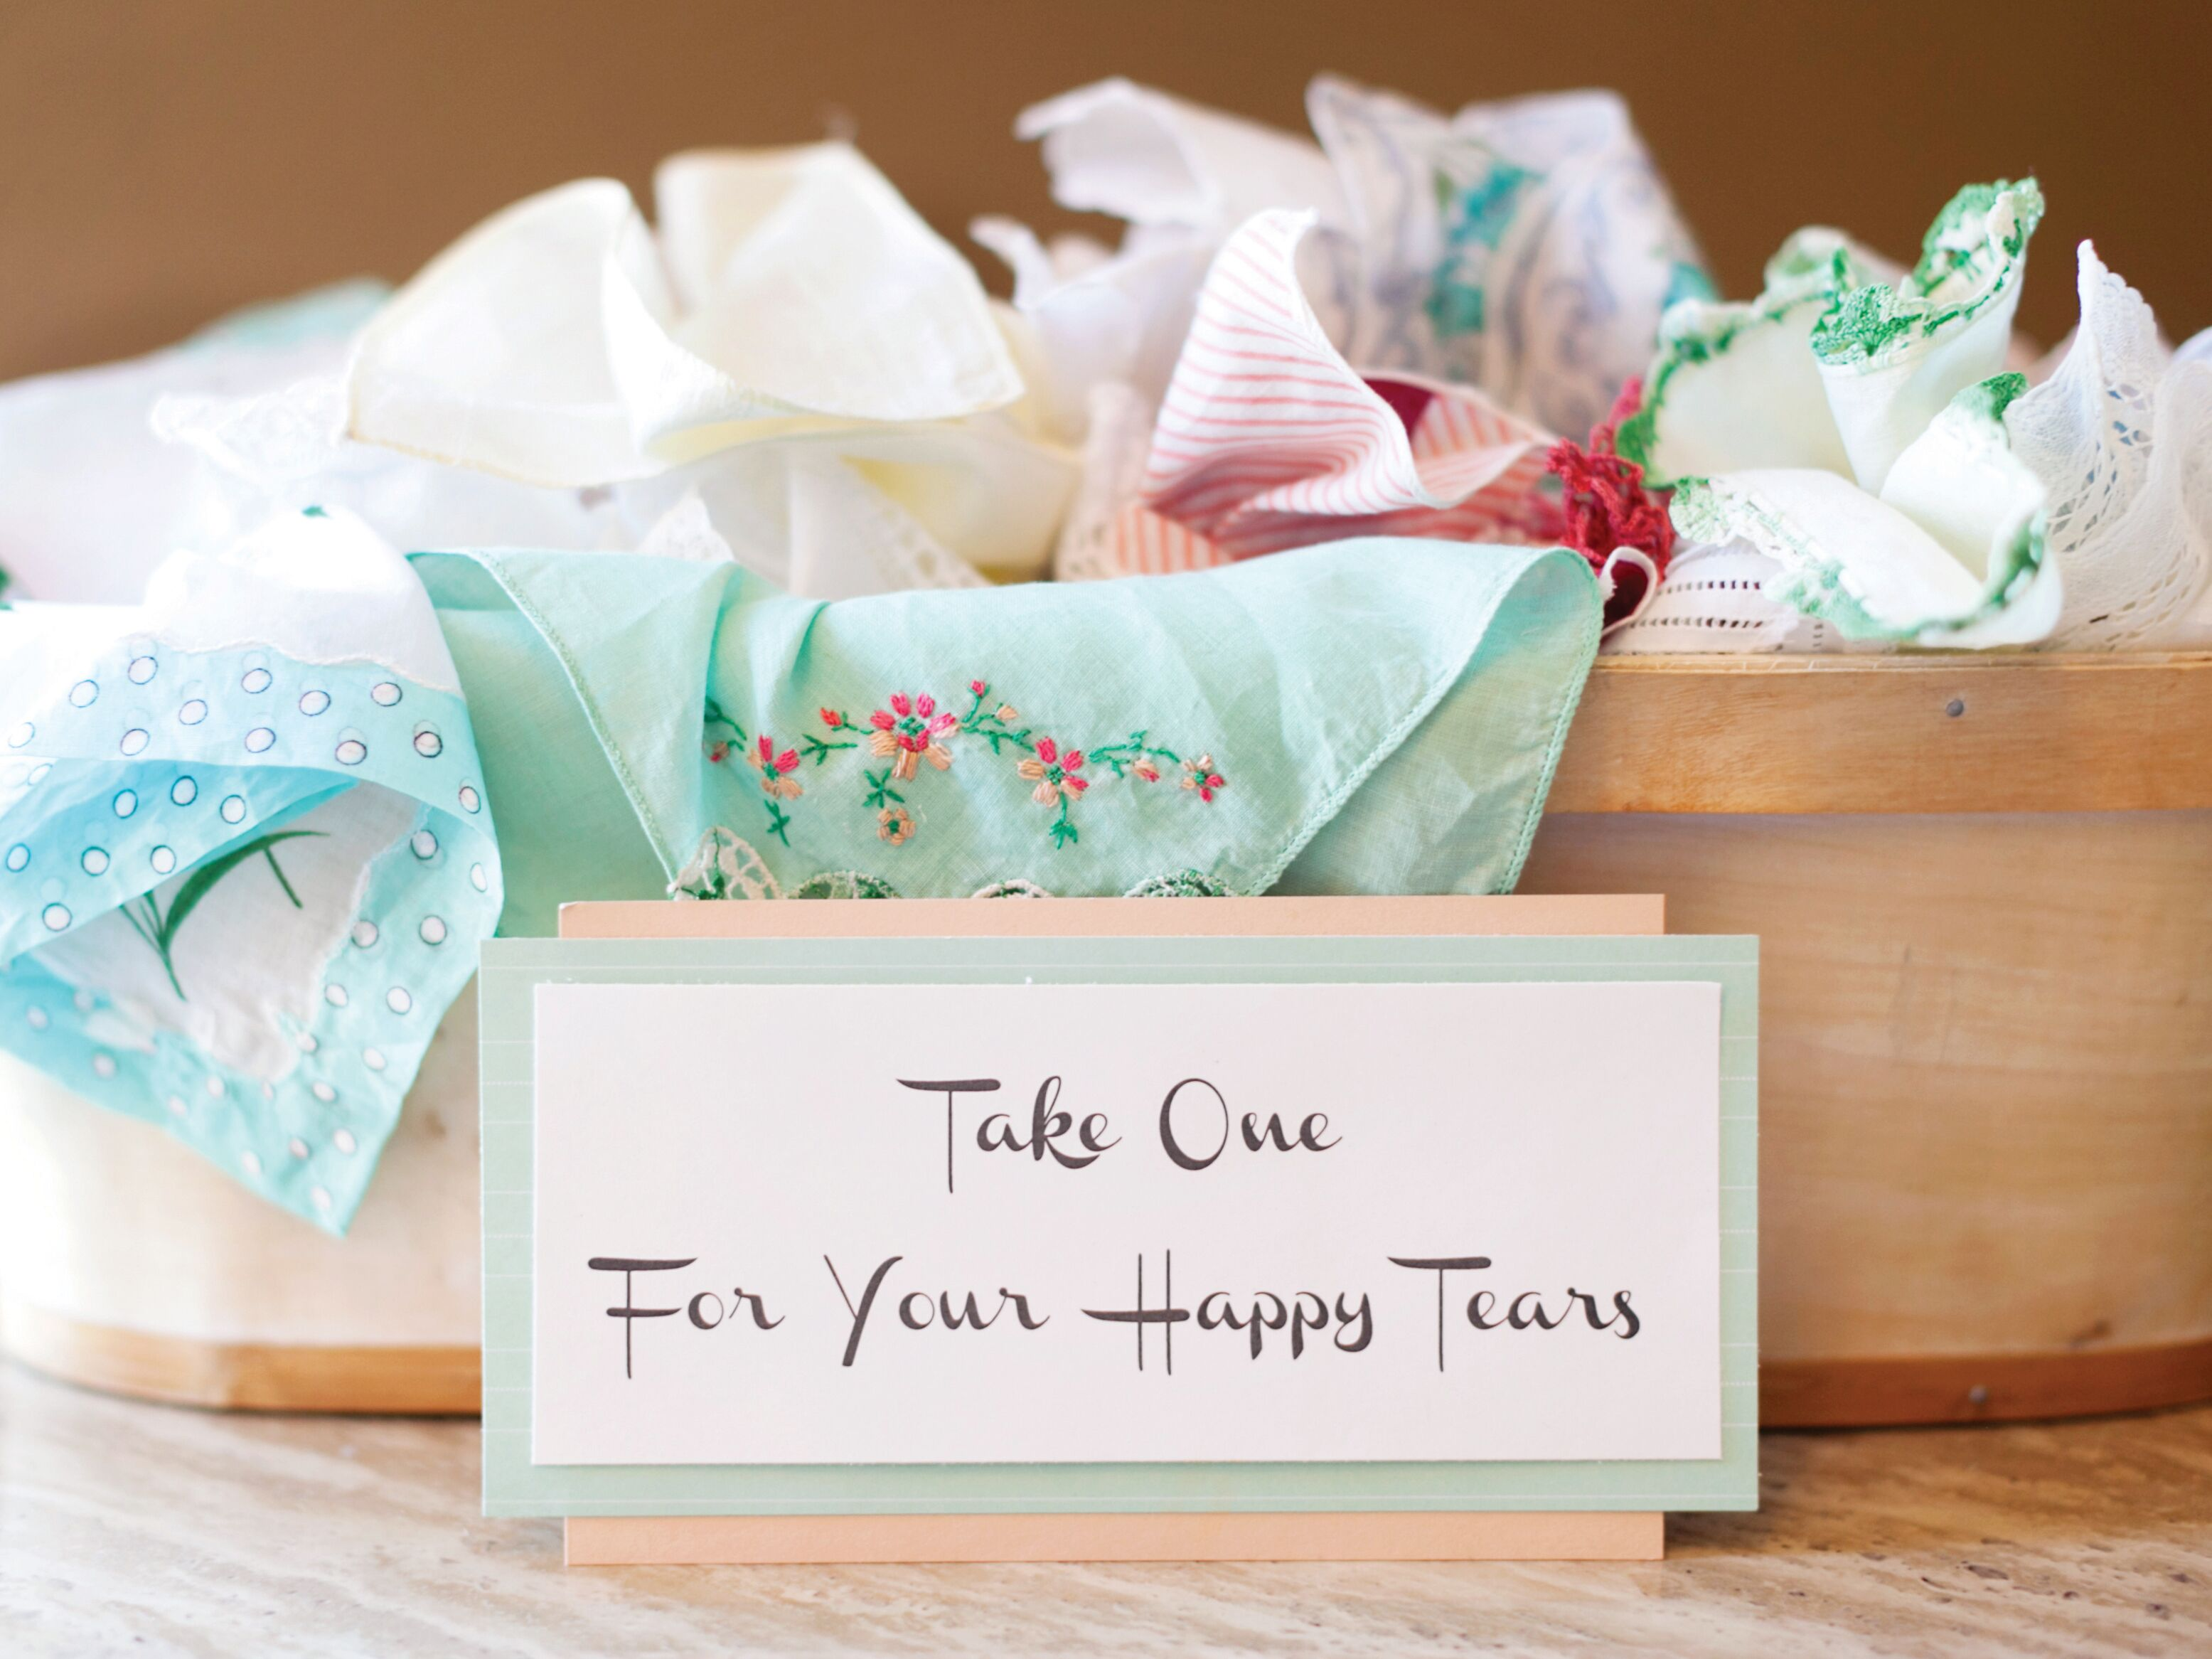 Creative Ways to Personalize Your Wedding Ceremony